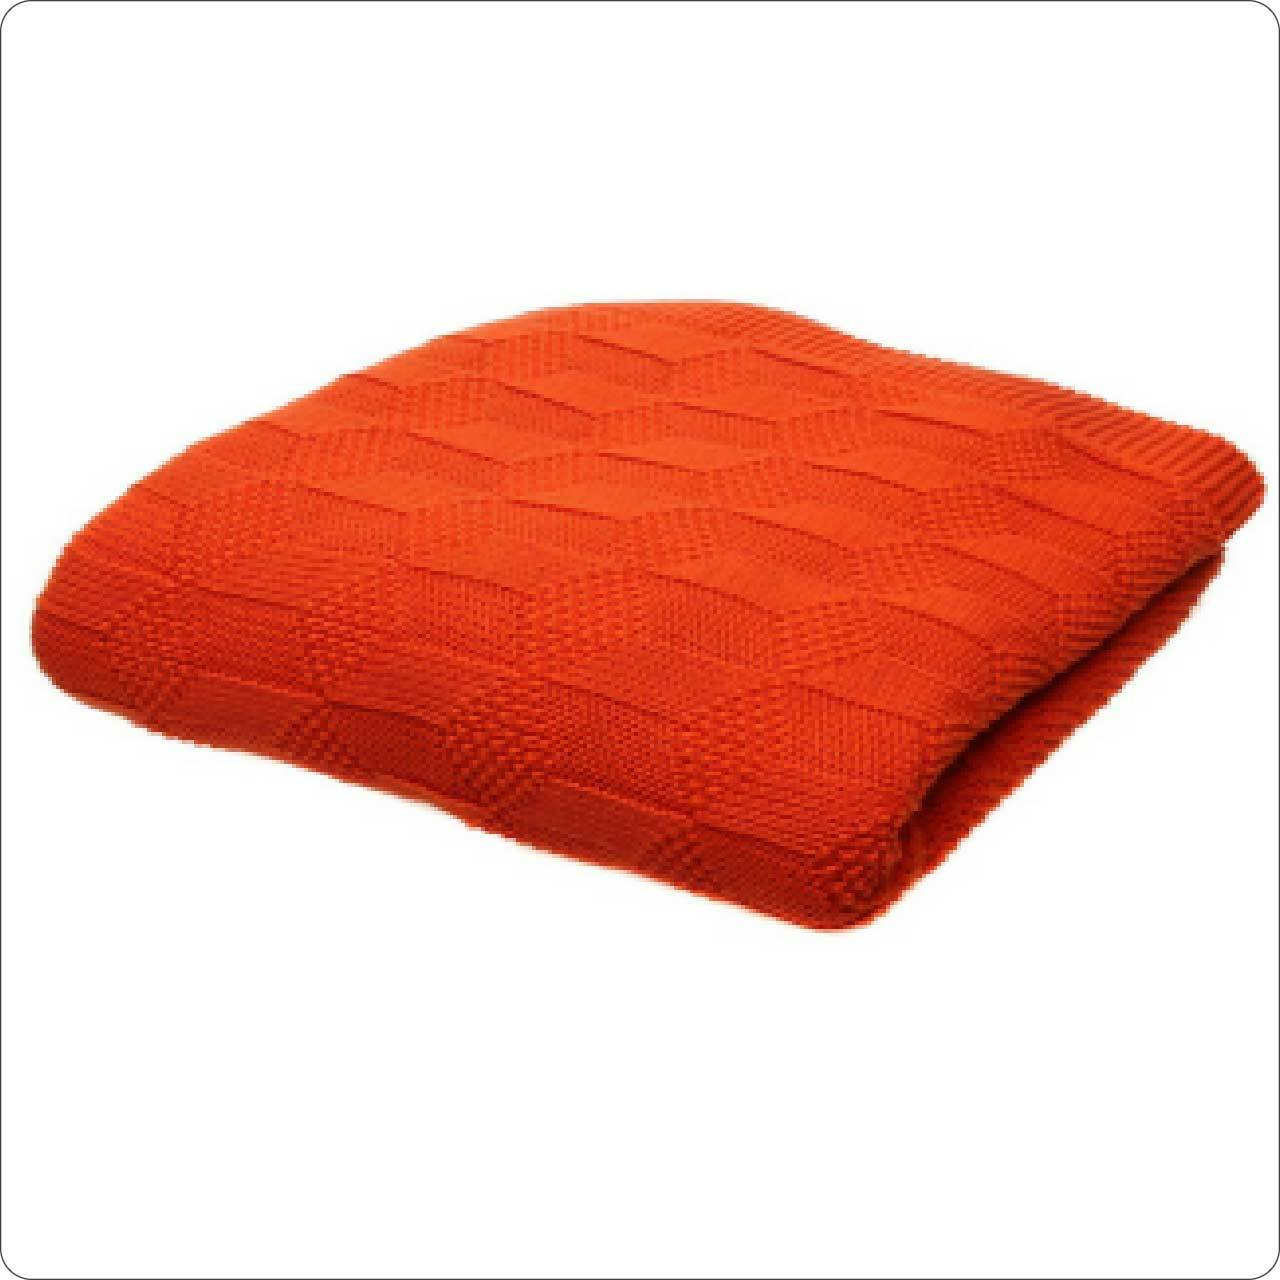 Luxury Cotton Cable Knit Throw 125x150cm/130x180cm Coral